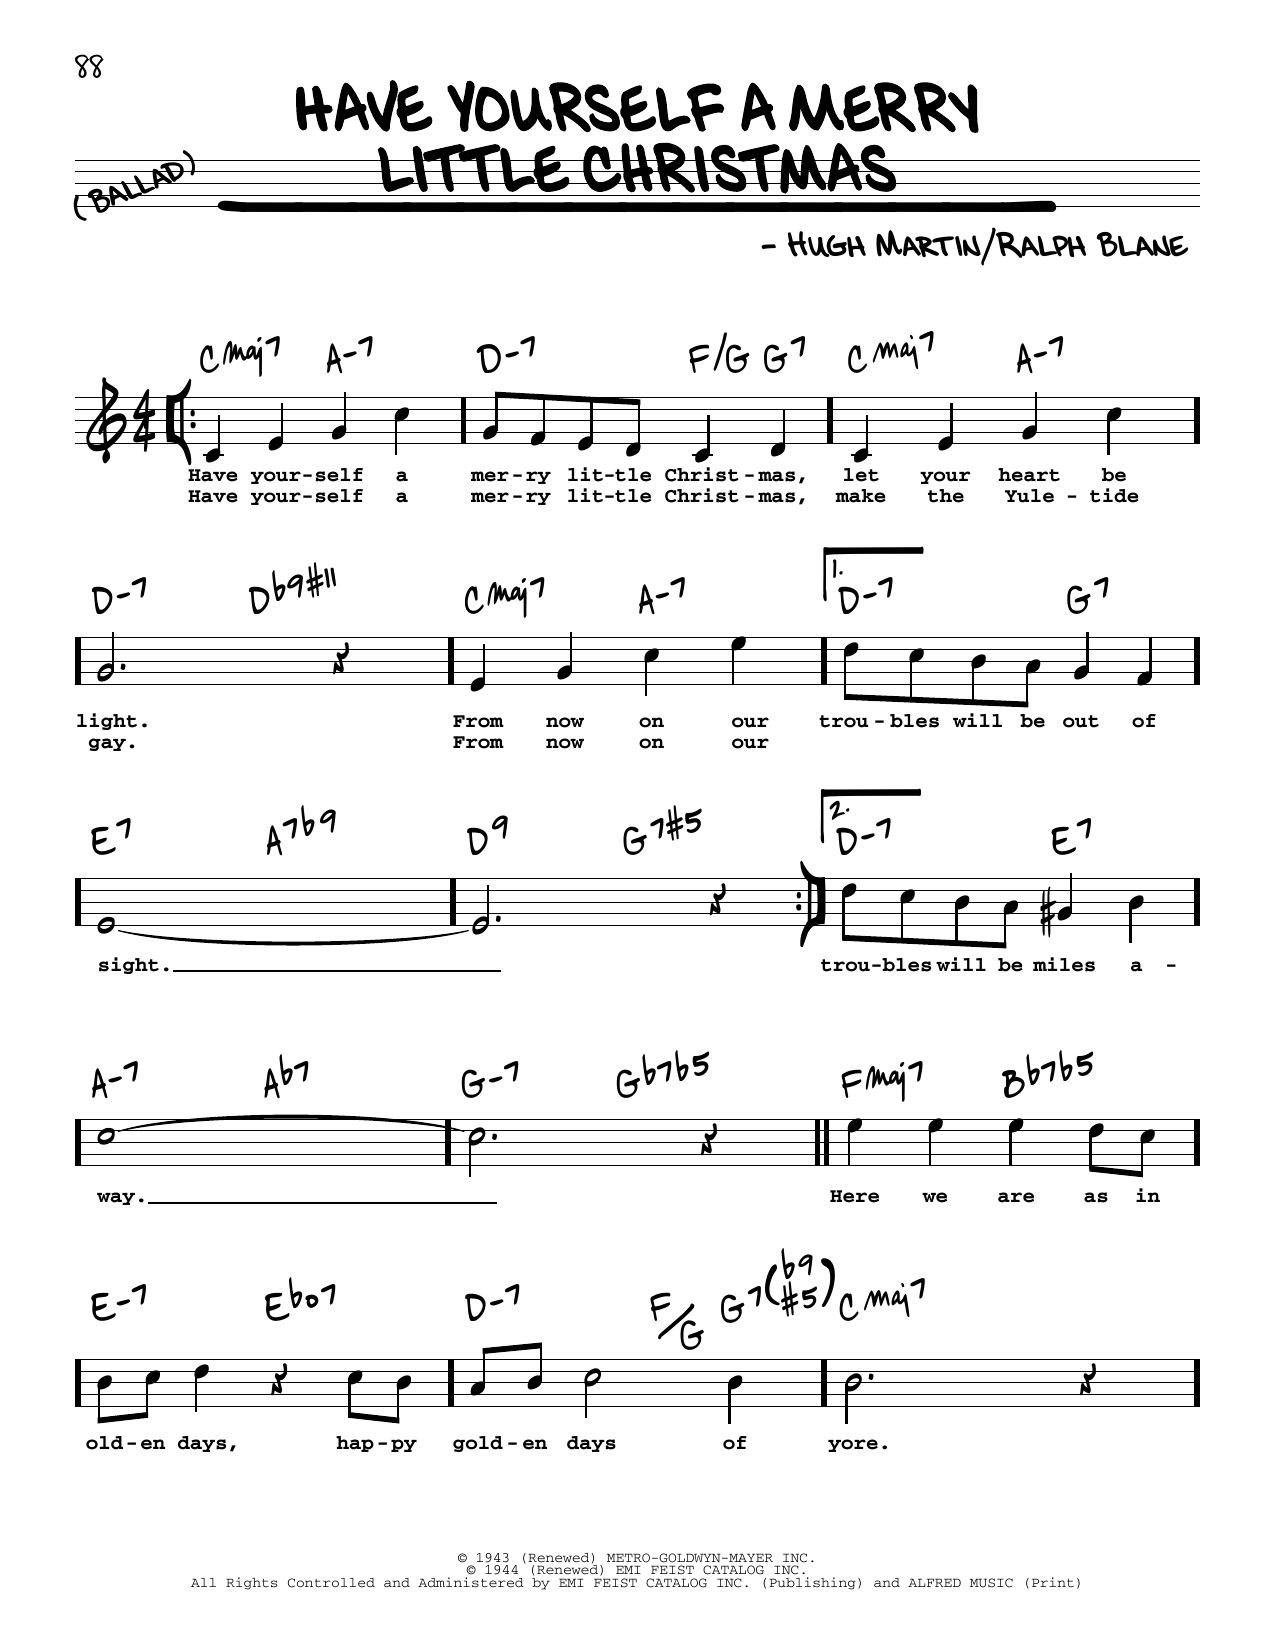 Merry Little Christmas Lyrics.Have Yourself A Merry Little Christmas Real Book Melody Lyrics Chords